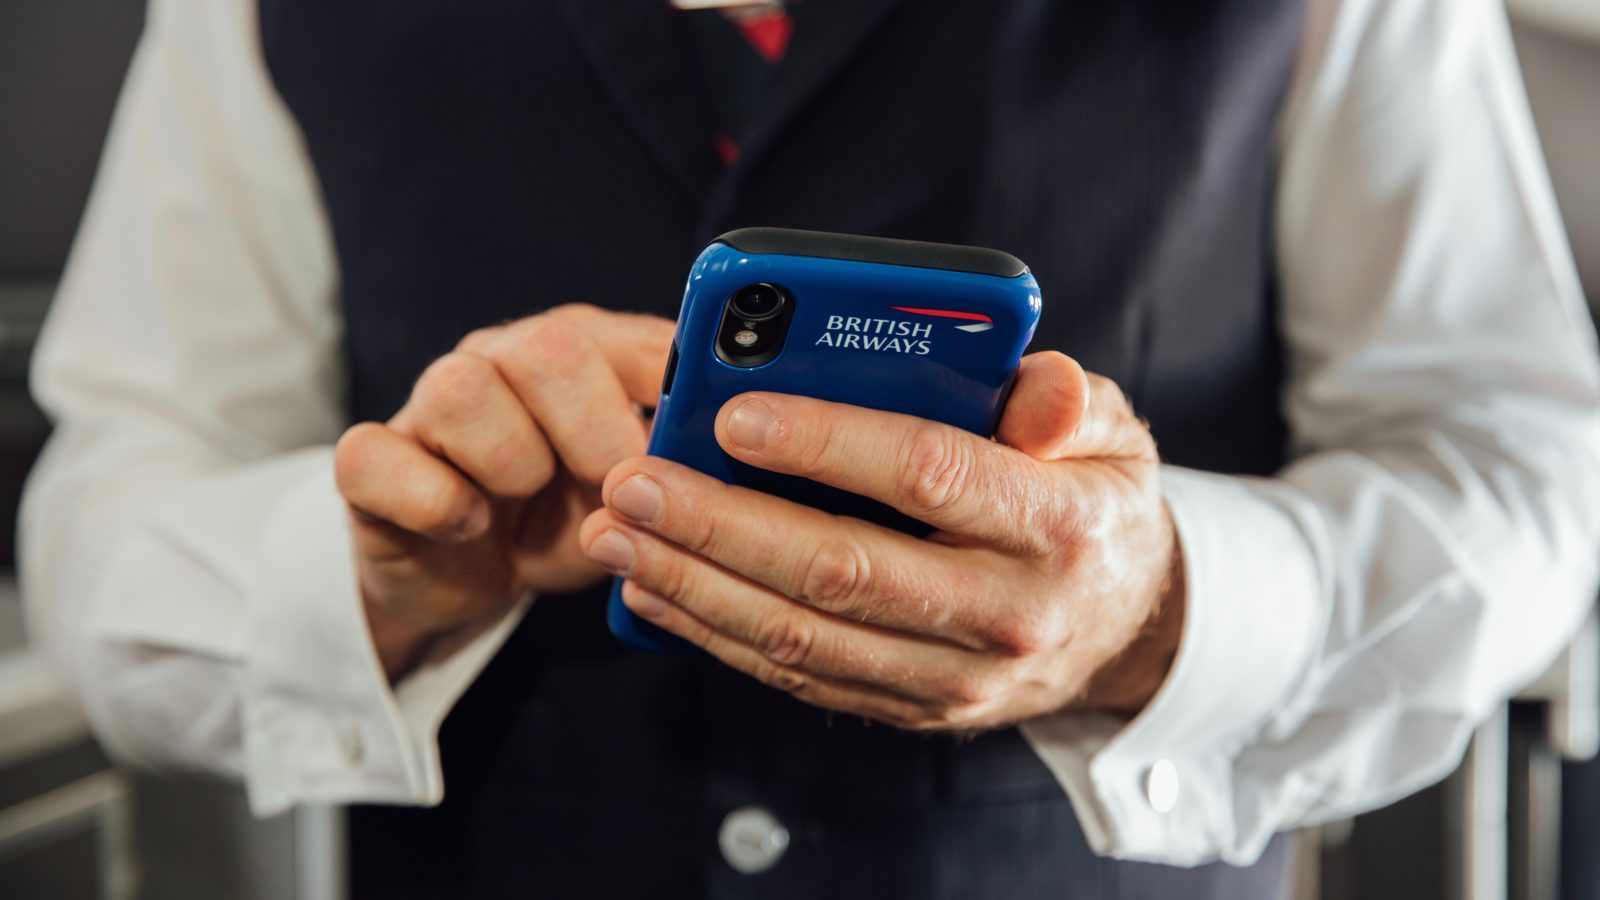 British Airways giving all 15,000 cabin crew members an iPhone XR for customer support